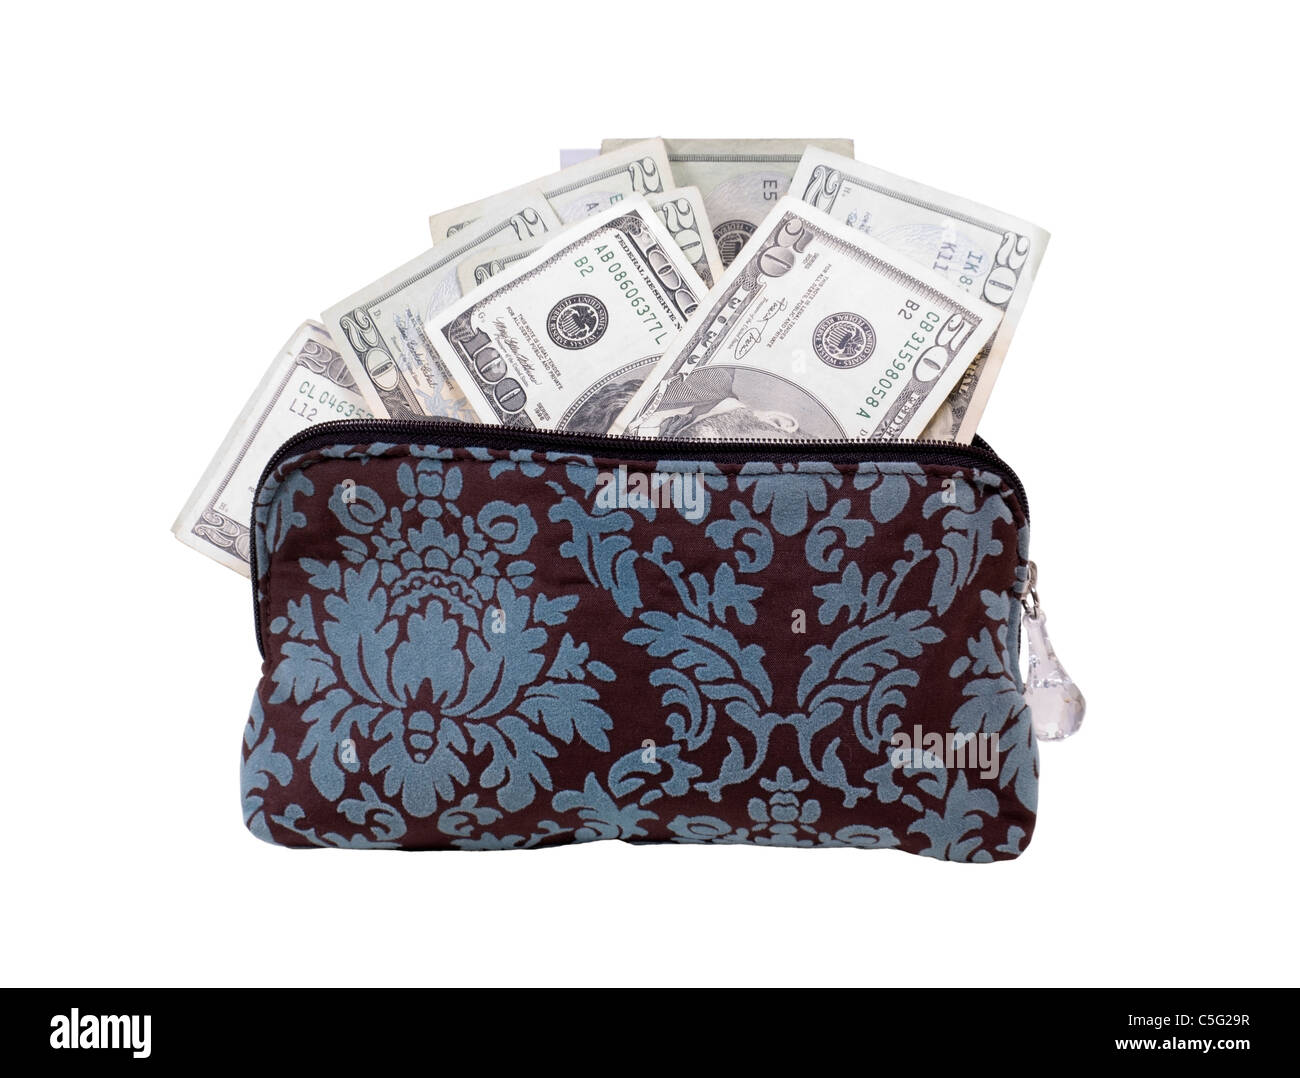 Mad money in the form of many large bills in a small handbag - path included - Stock Image